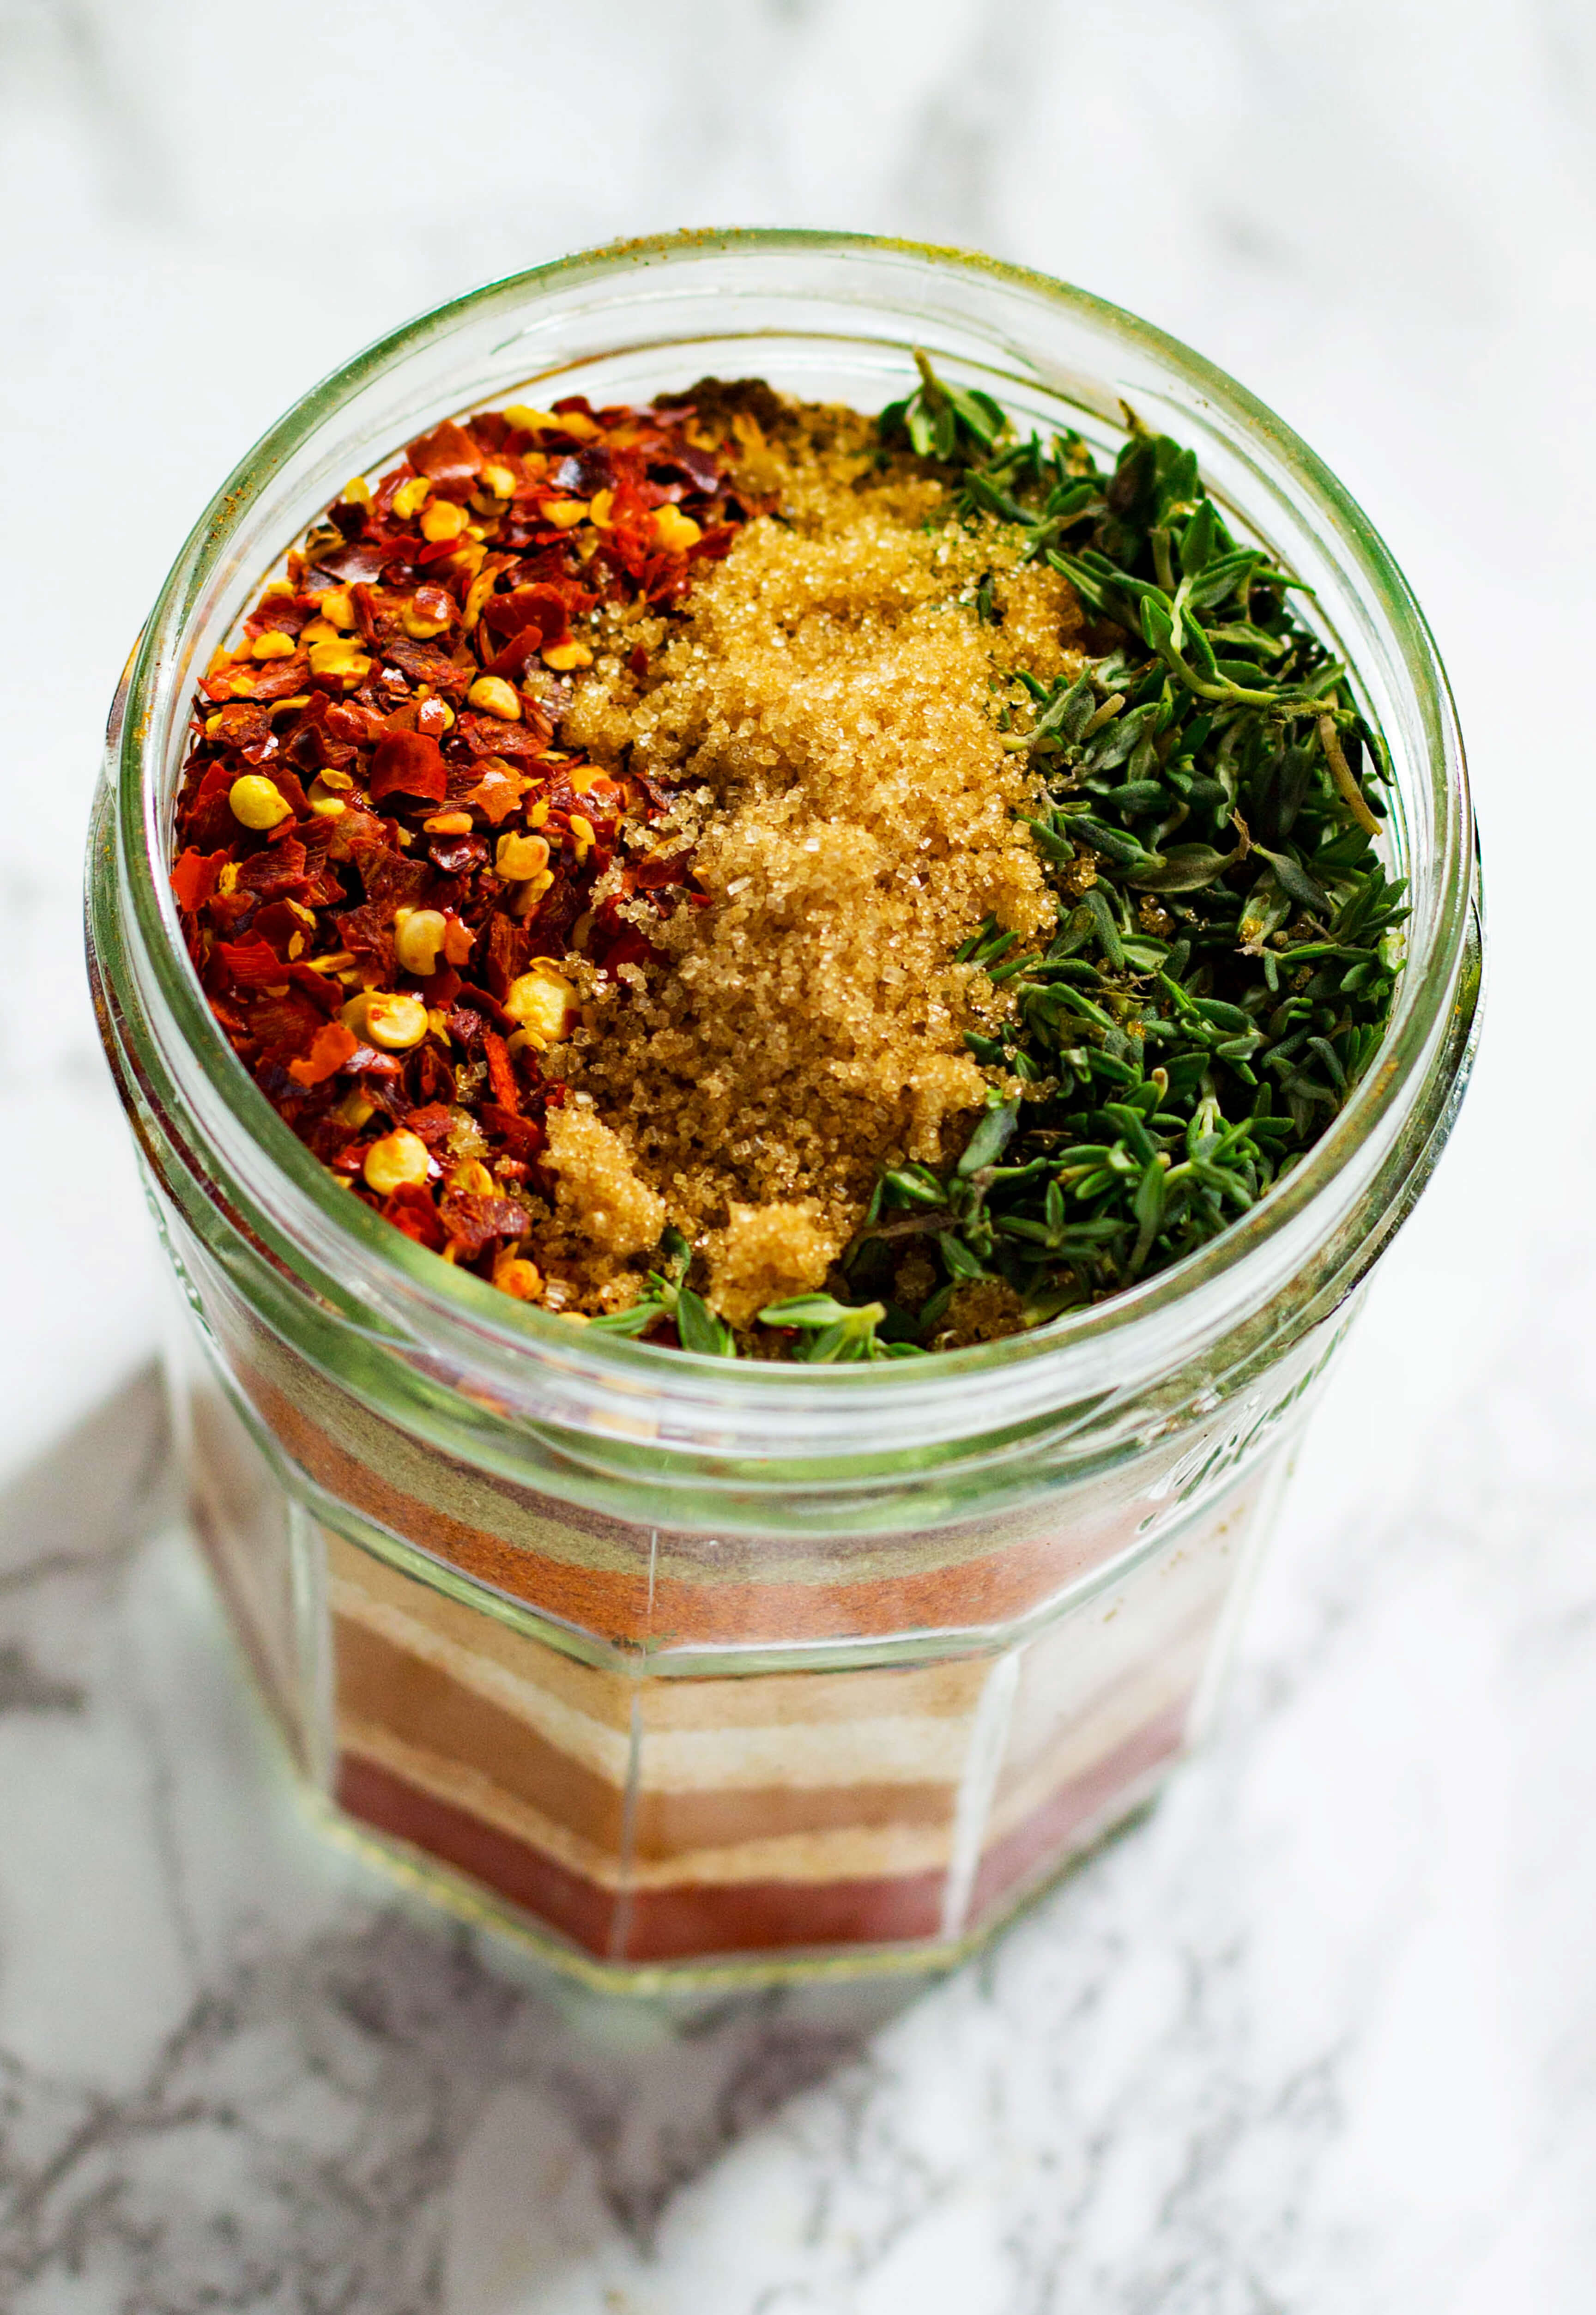 This Jamaican jerk dry seasoning recipe is a quick and easy way to add tons of flavor and spice to any dish.